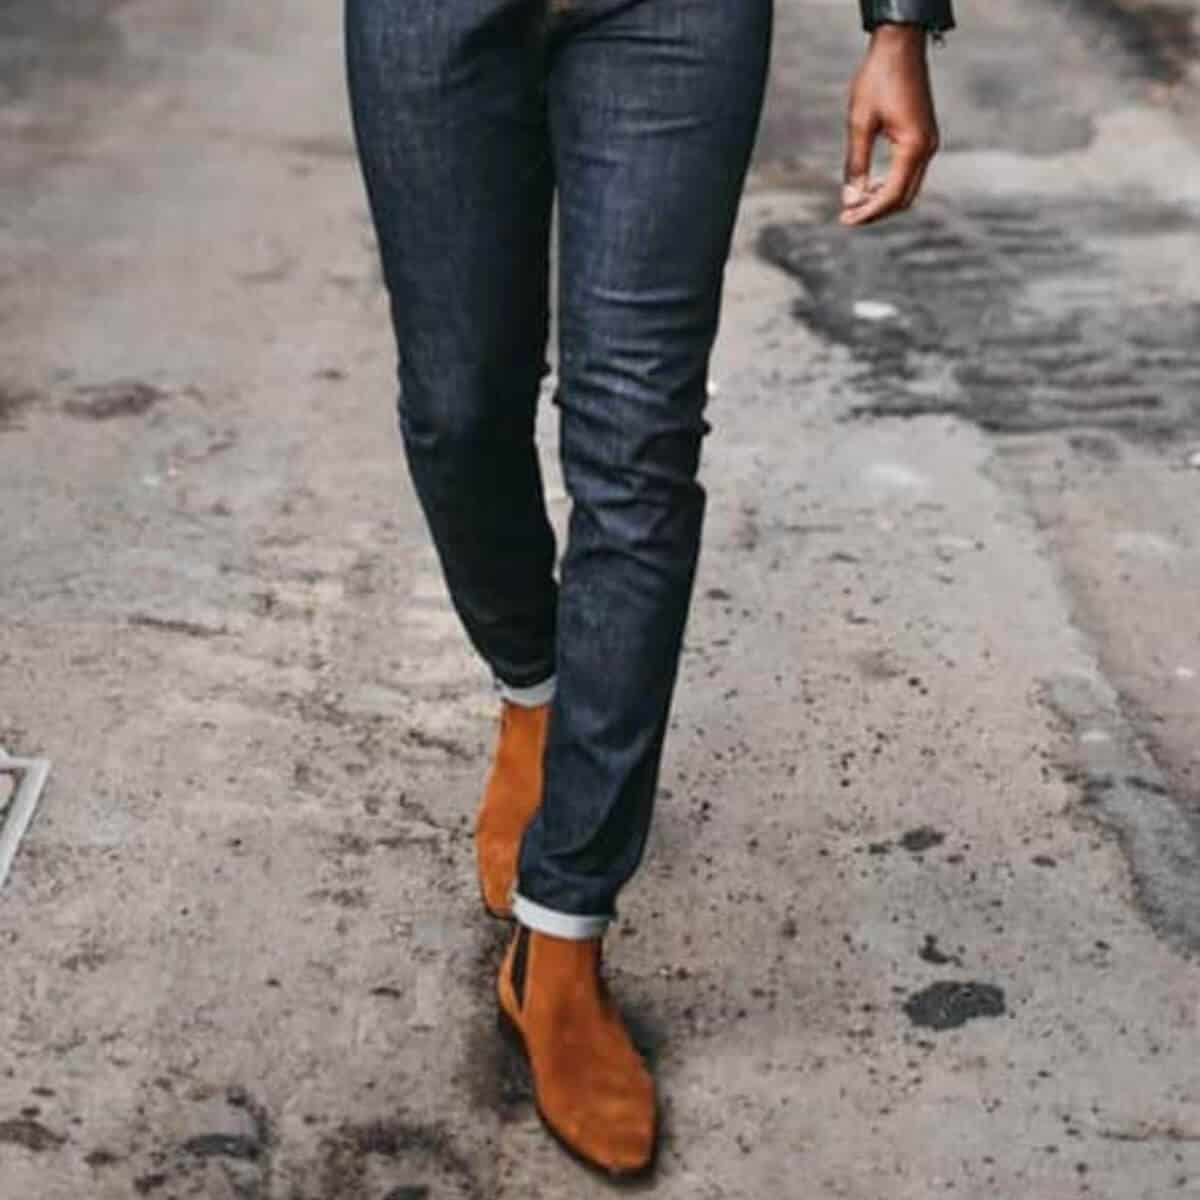 Lower half of a man wearing jeans and boots.